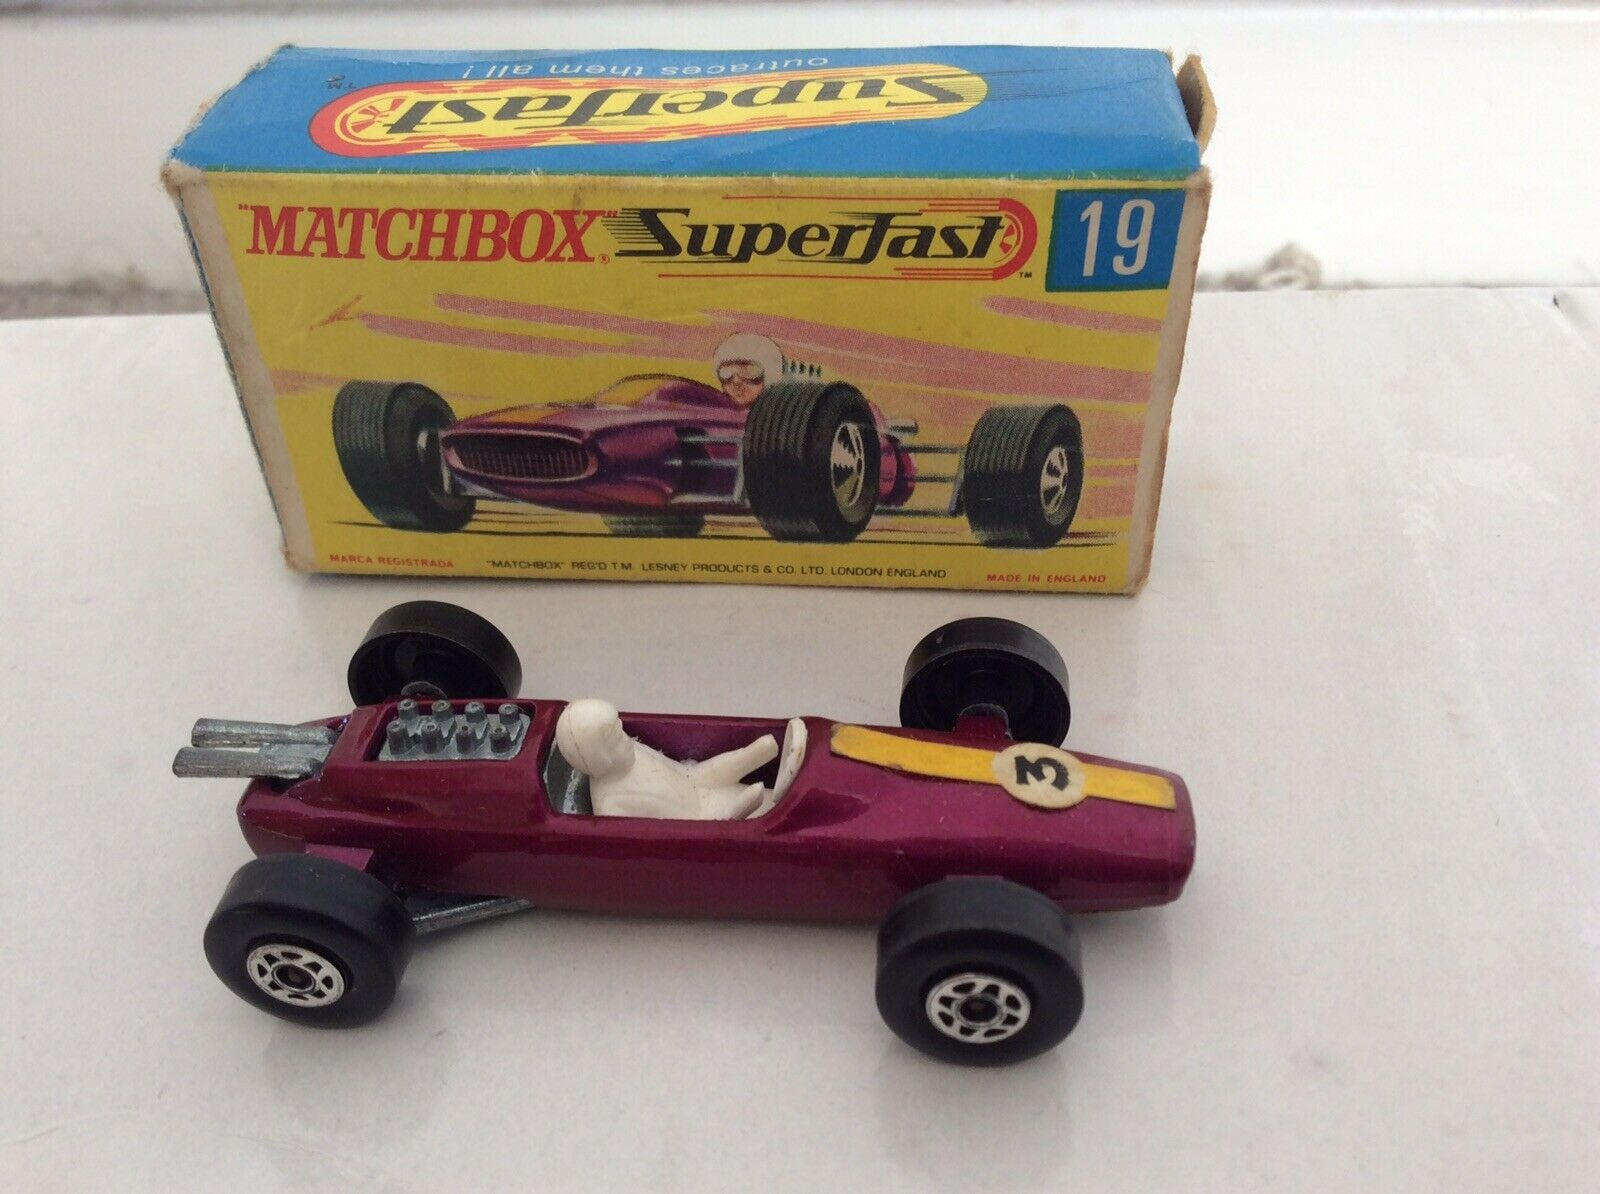 Rare 1960s Matchbox Superfast No.19 Lotus Lotus Racng Car Boxed Very Good Condition